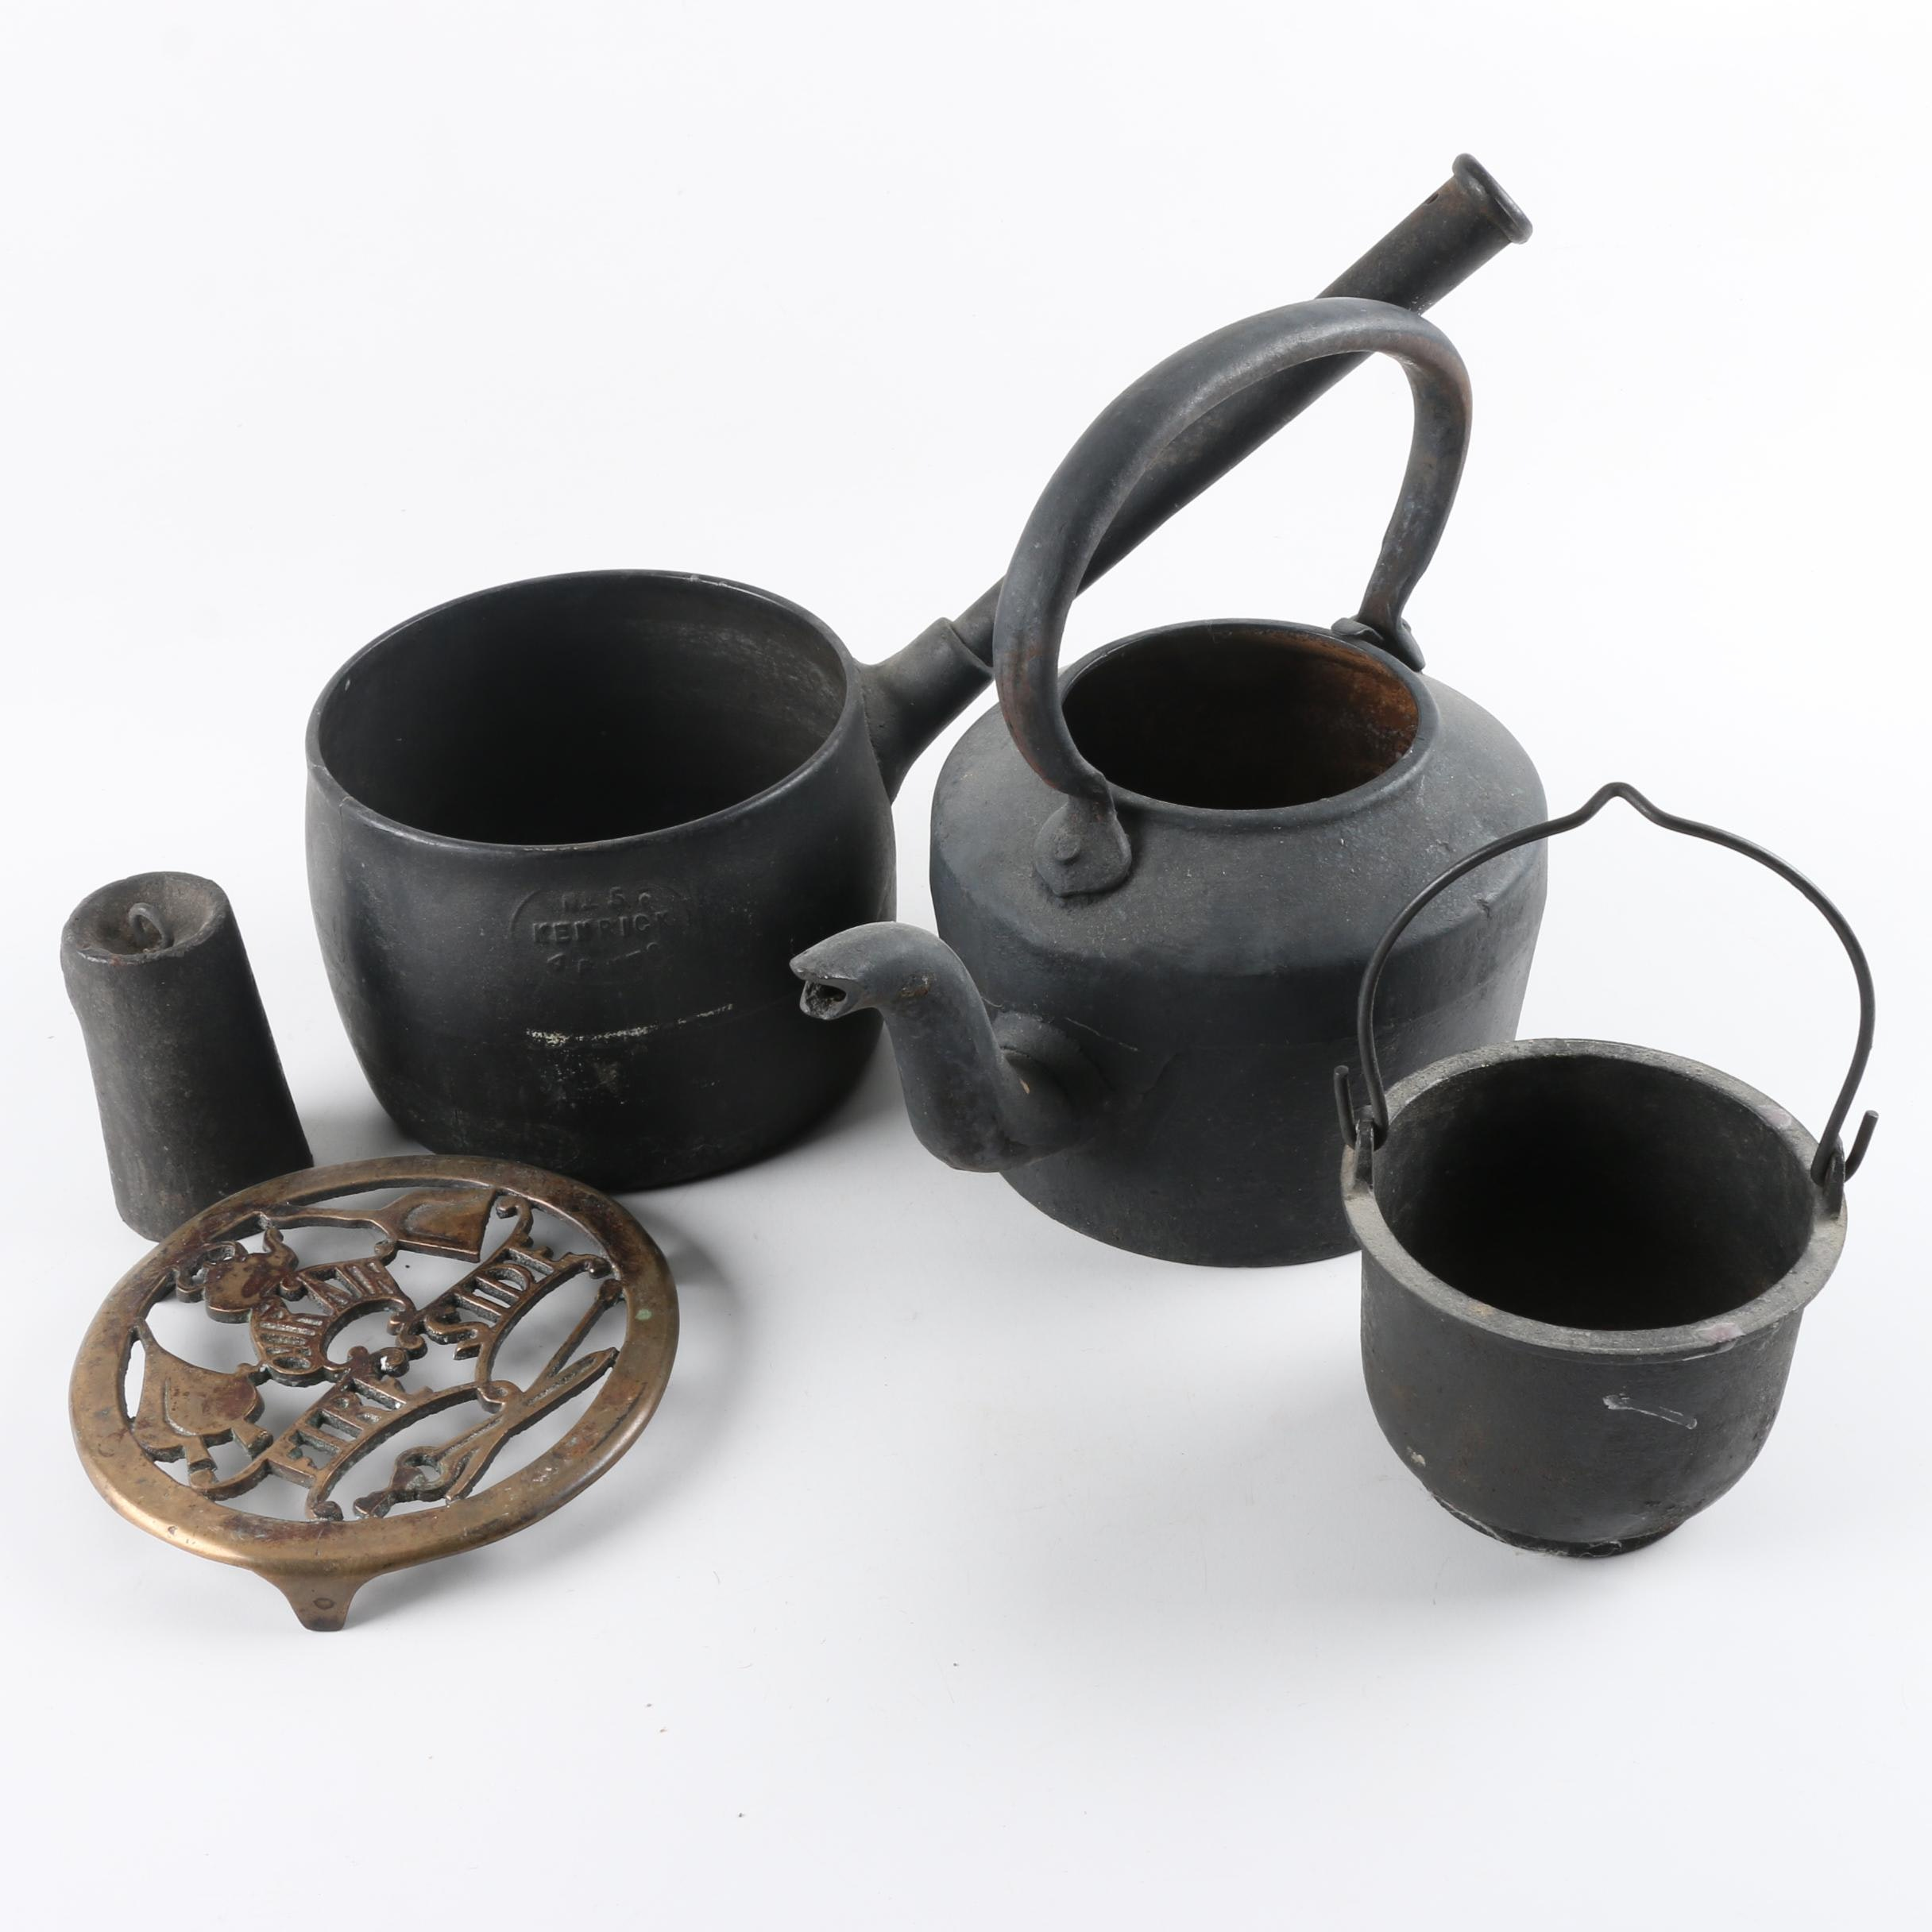 Vintage Cast Iron Serveware and Cookware